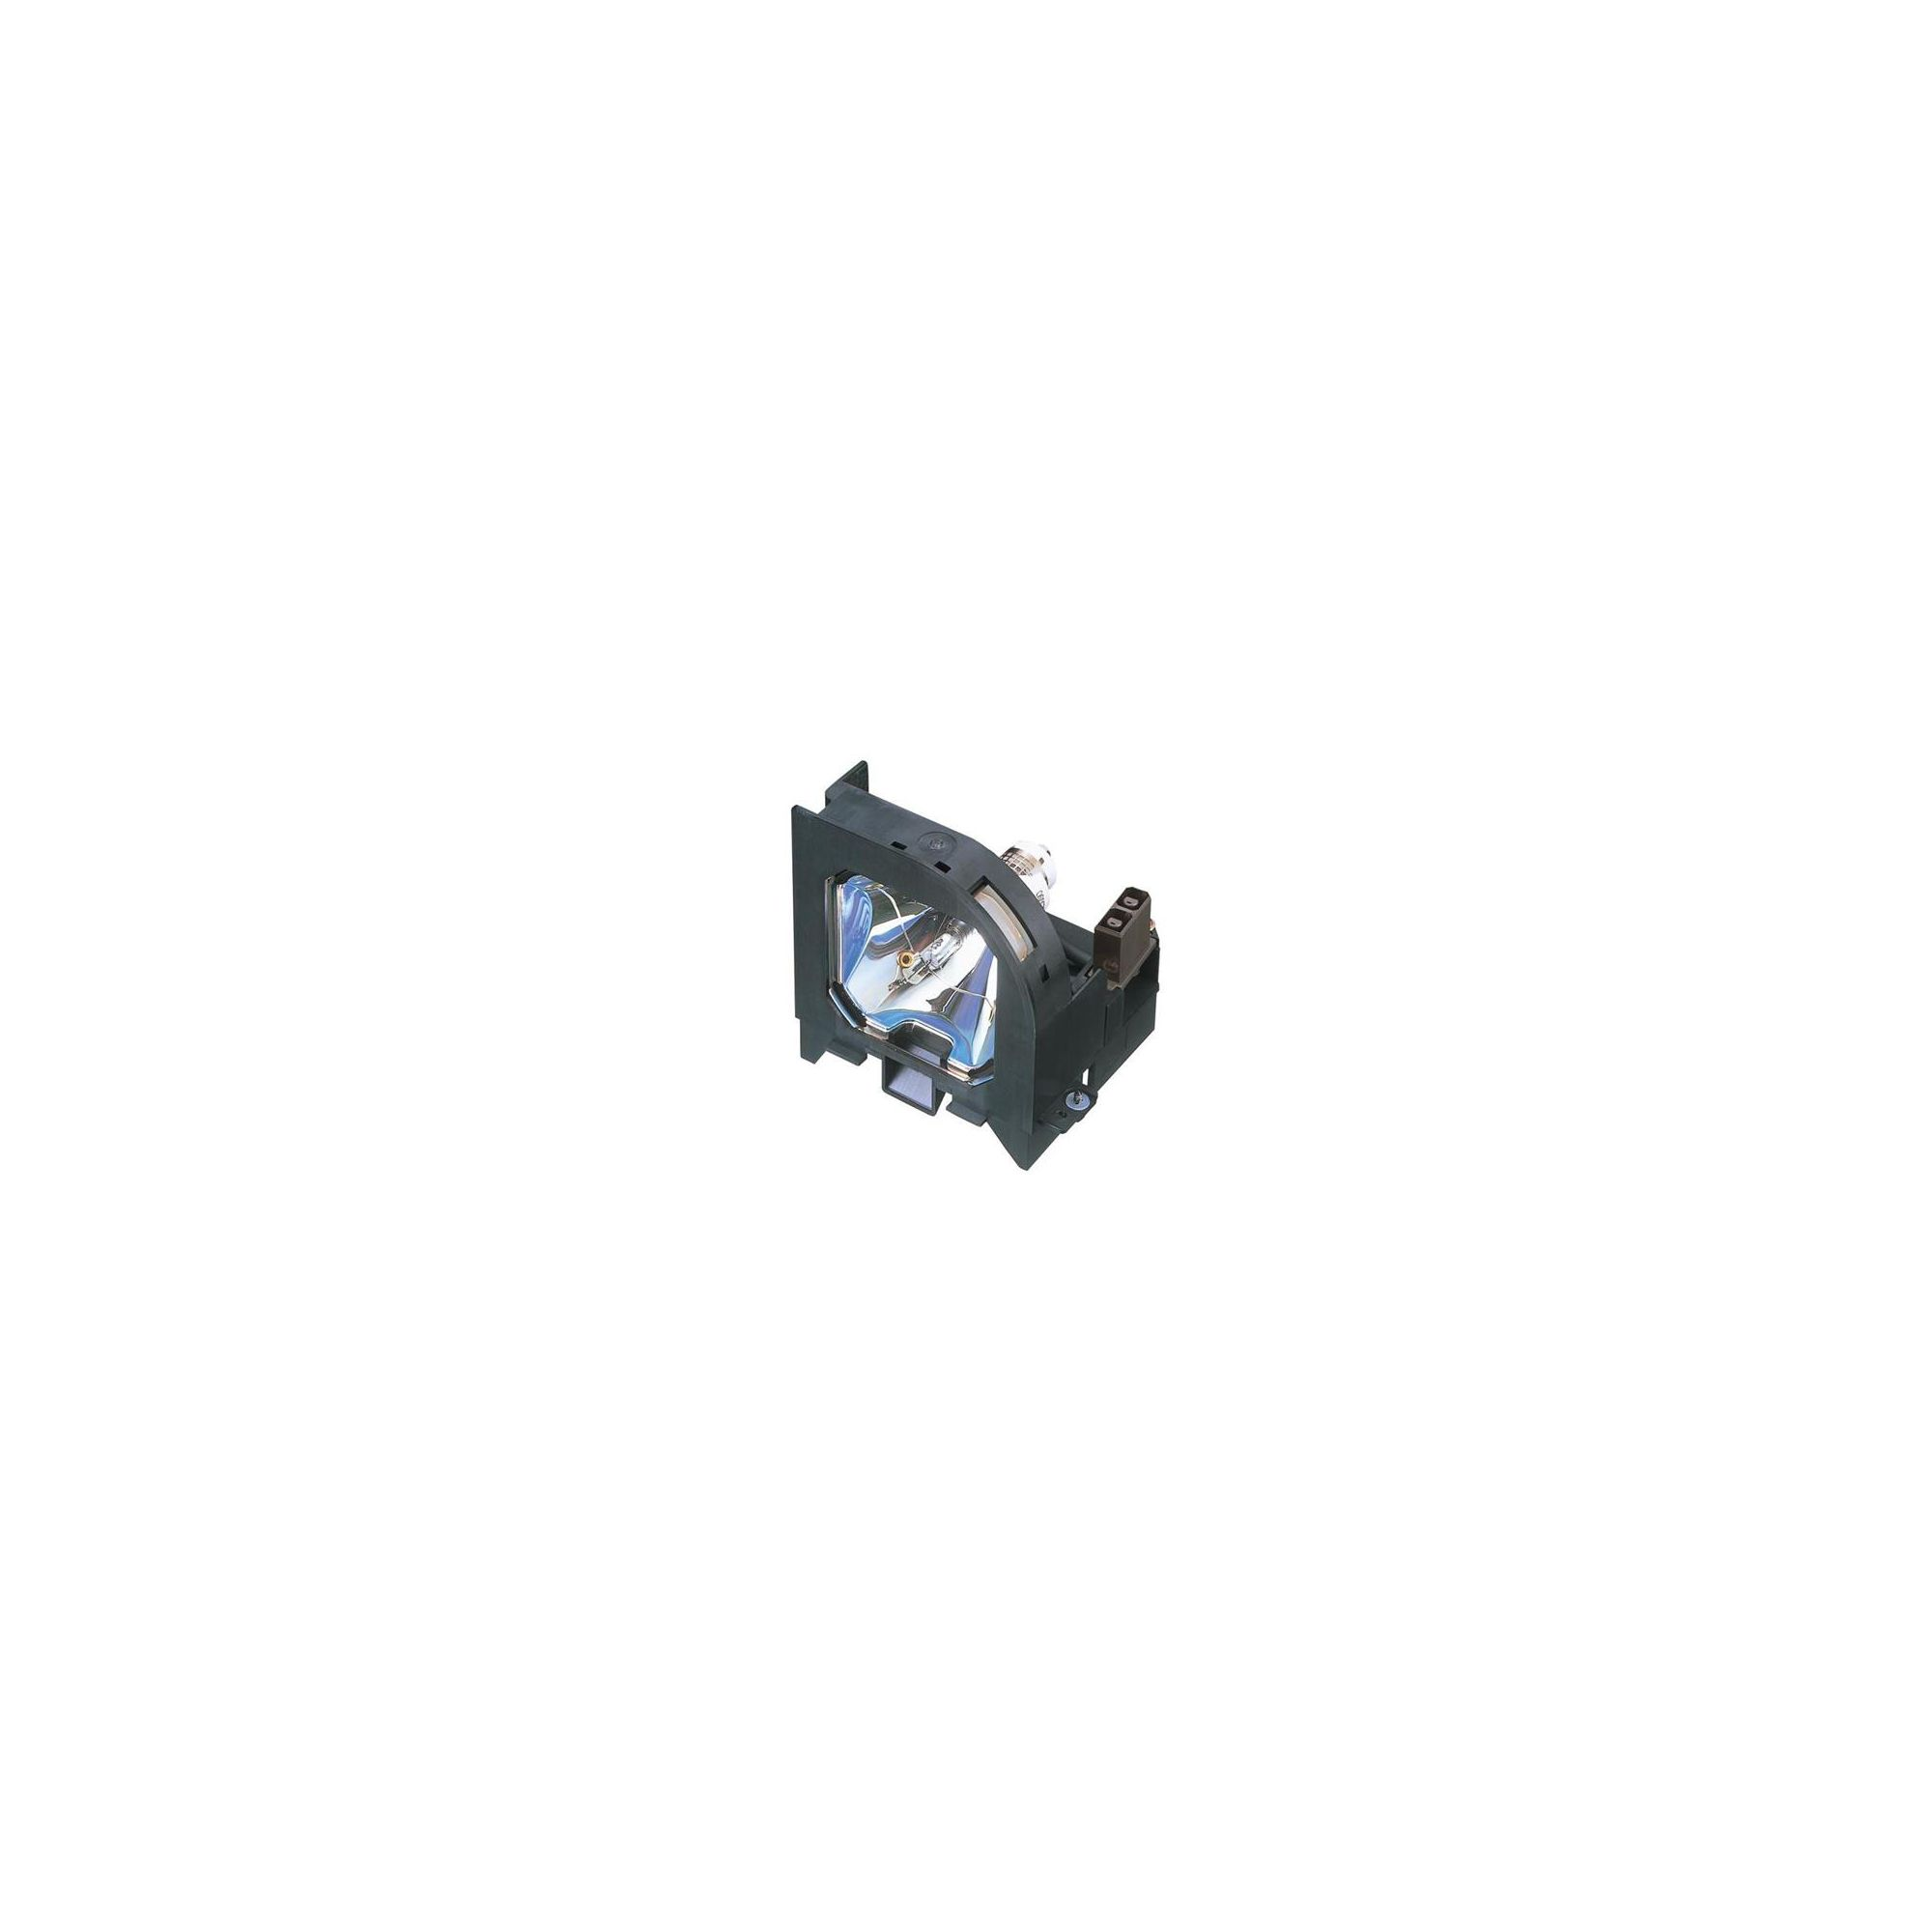 Sony LMP-F300 Replacement Projector Lamp for VPL-FX51 at Tesco Direct